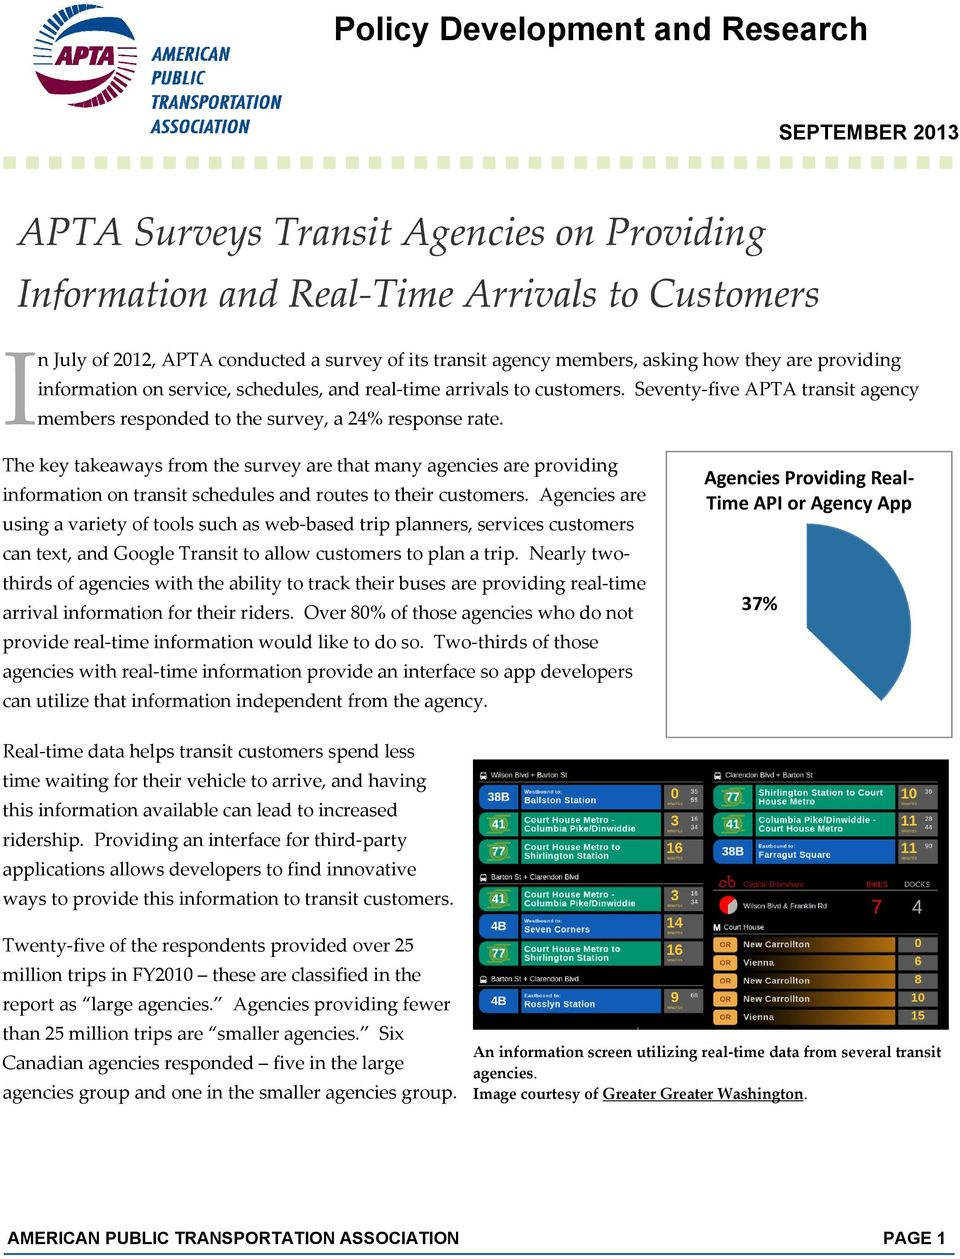 The key takeaways from the survey are that many agencies are providing information on transit schedules and routes to their customers.